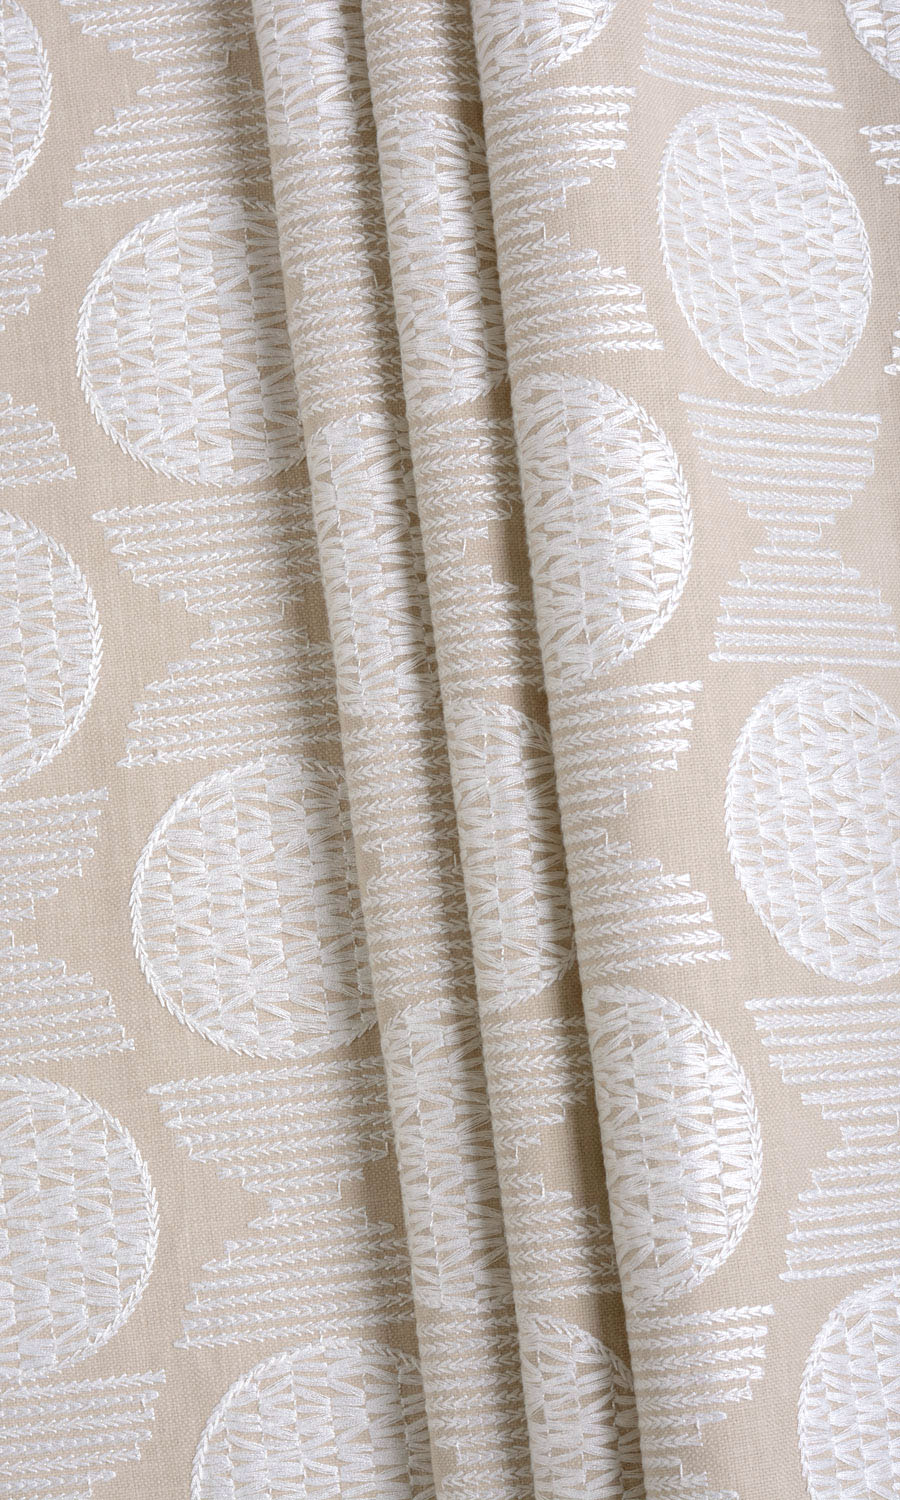 Geometric Patterned Curtains For Bedroom